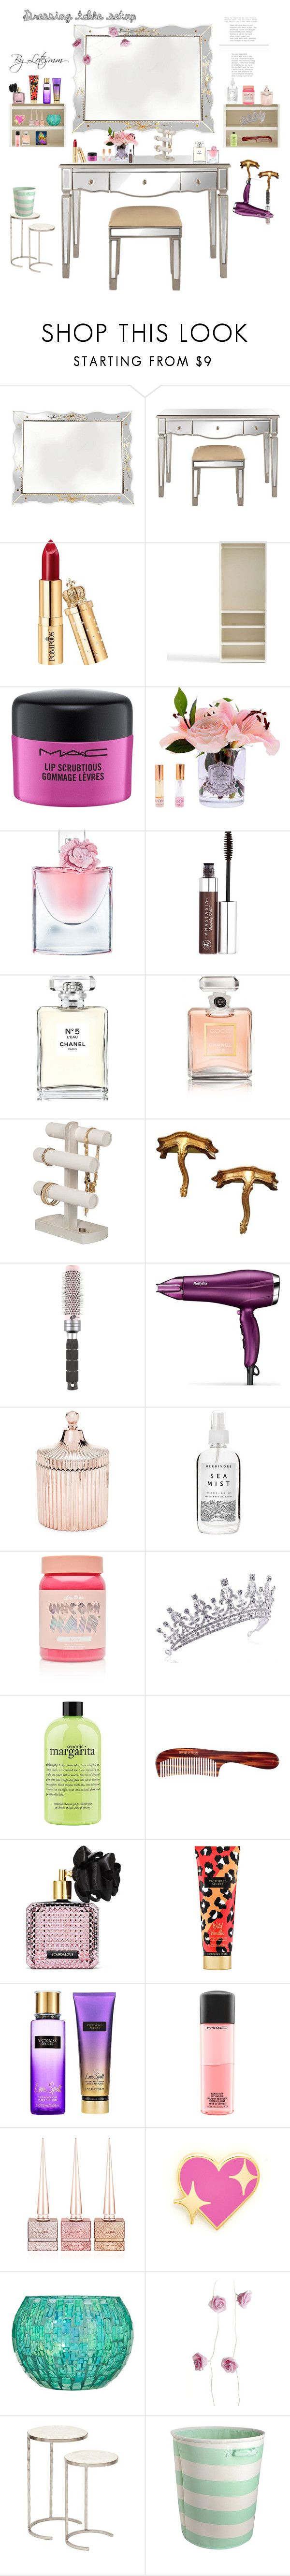 """""""dressing table setup"""" by lotesmm ❤ liked on Polyvore featuring interior, interiors, interior design, home, home decor, interior decorating, Pottery Barn, MAC Cosmetics, Côte Noire and Lancôme"""